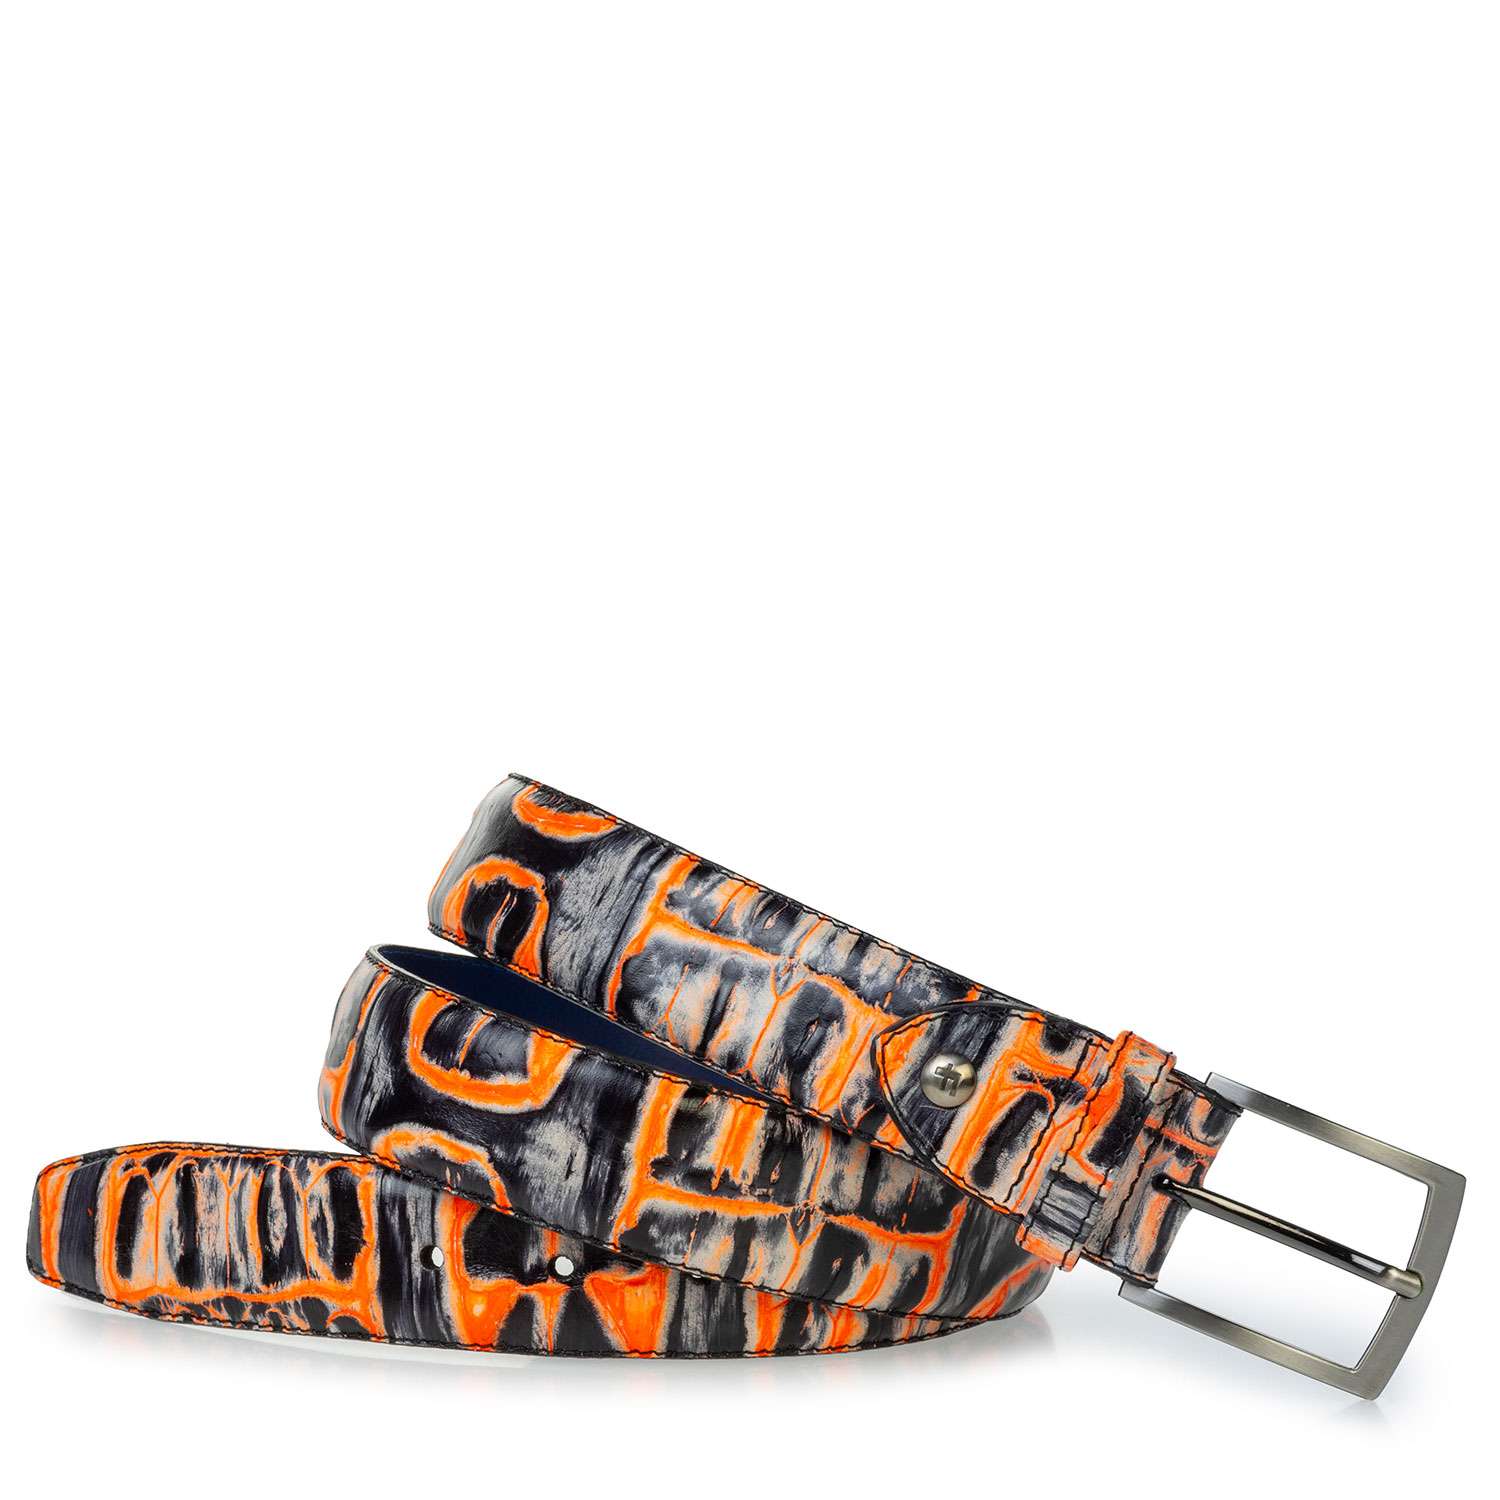 75203/27 - Belt orange croco print